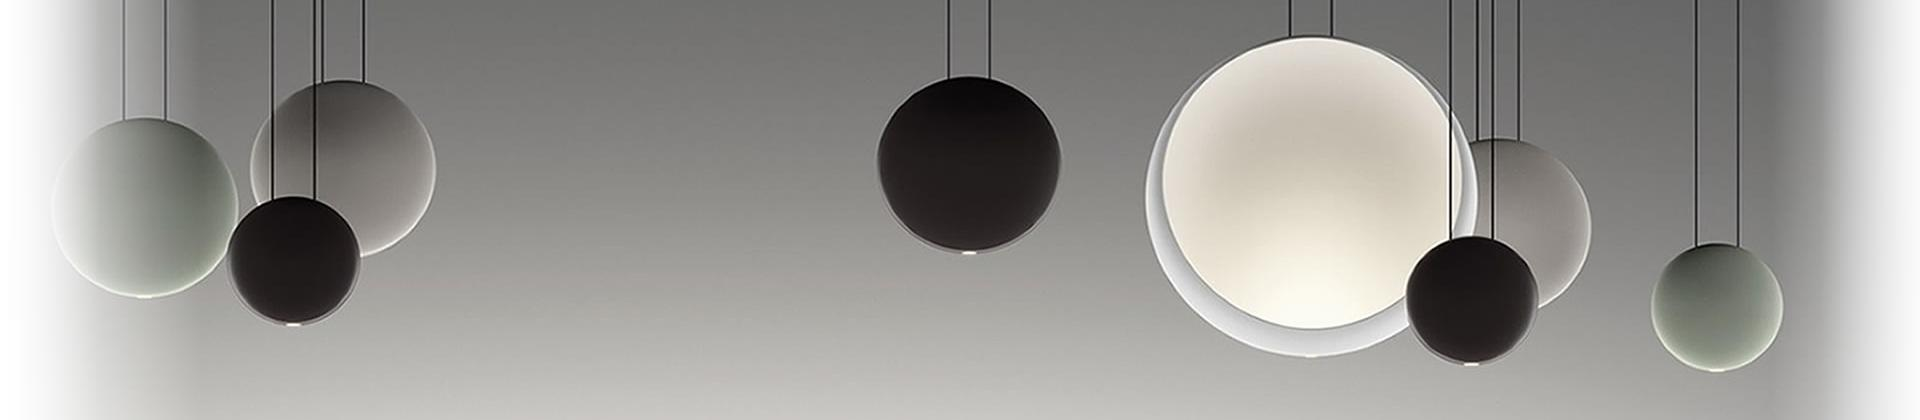 June design outdoor lamps collection by Vibia